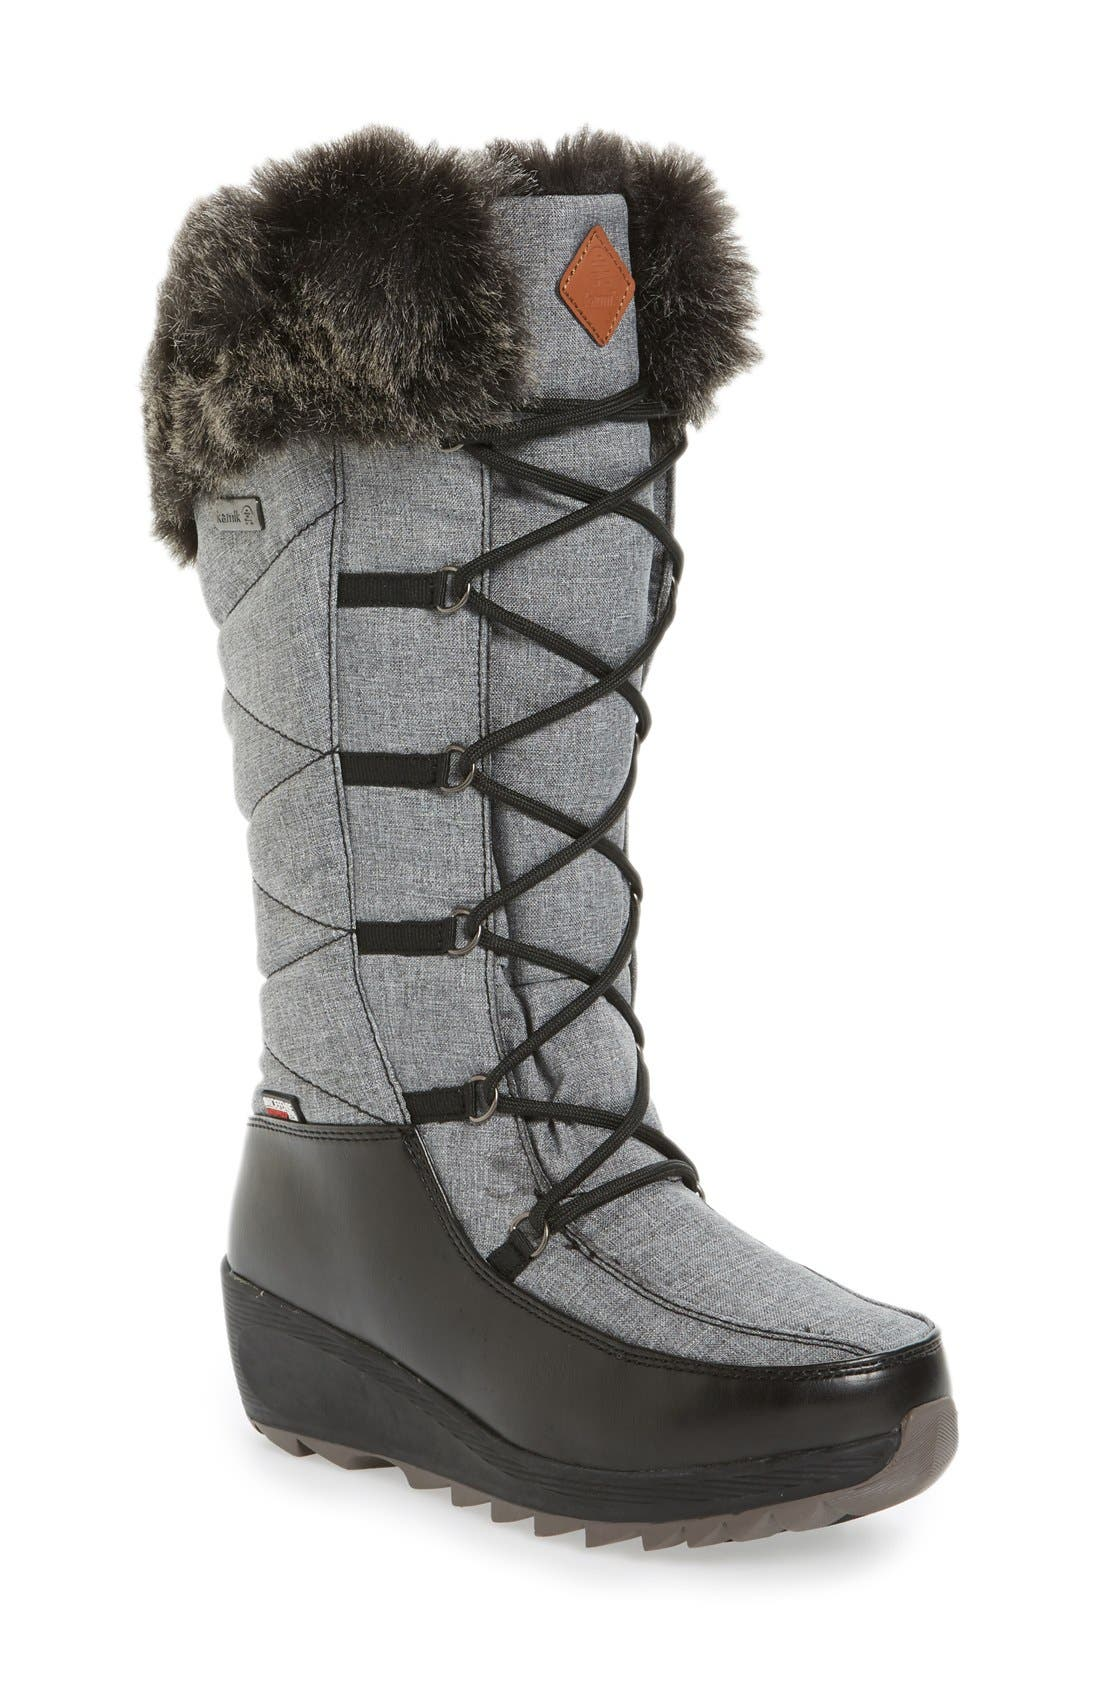 Pinot Waterproof Boot with Faux Fur Cuff,                         Main,                         color,